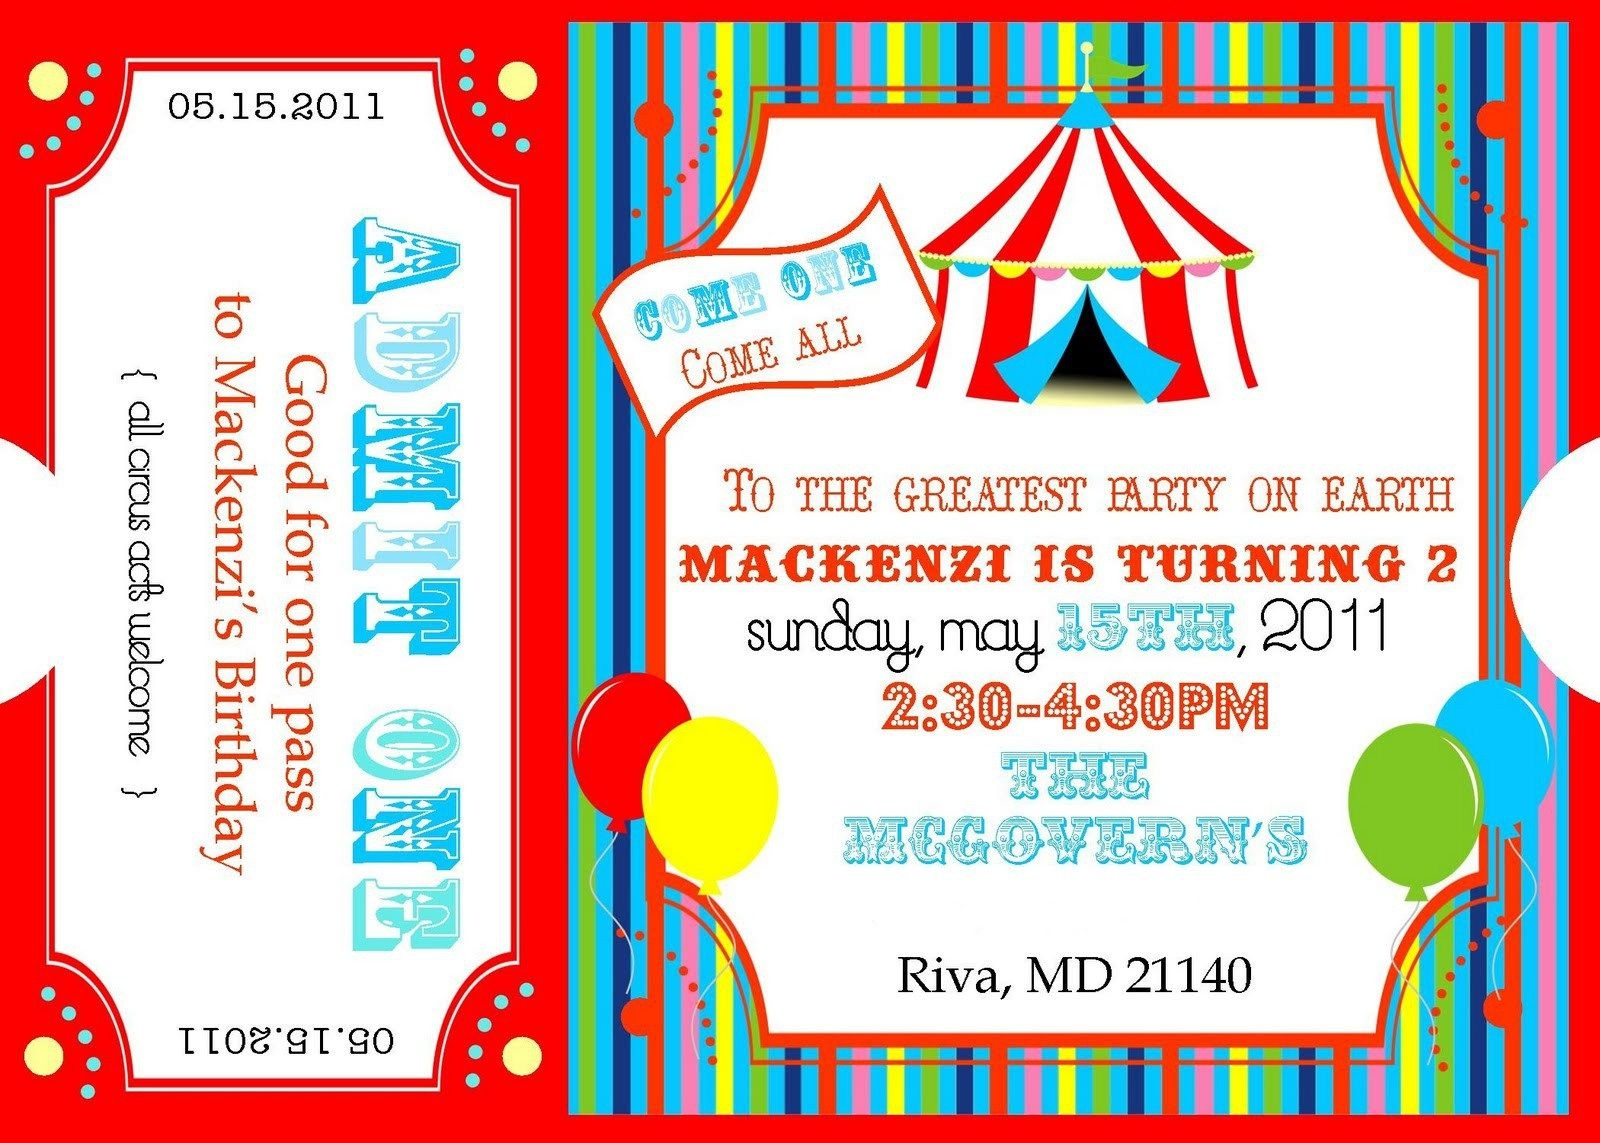 Free Printable Circus Invitation Templates. Please Forgive My Photos - Free Printable Ticket Invitation Templates